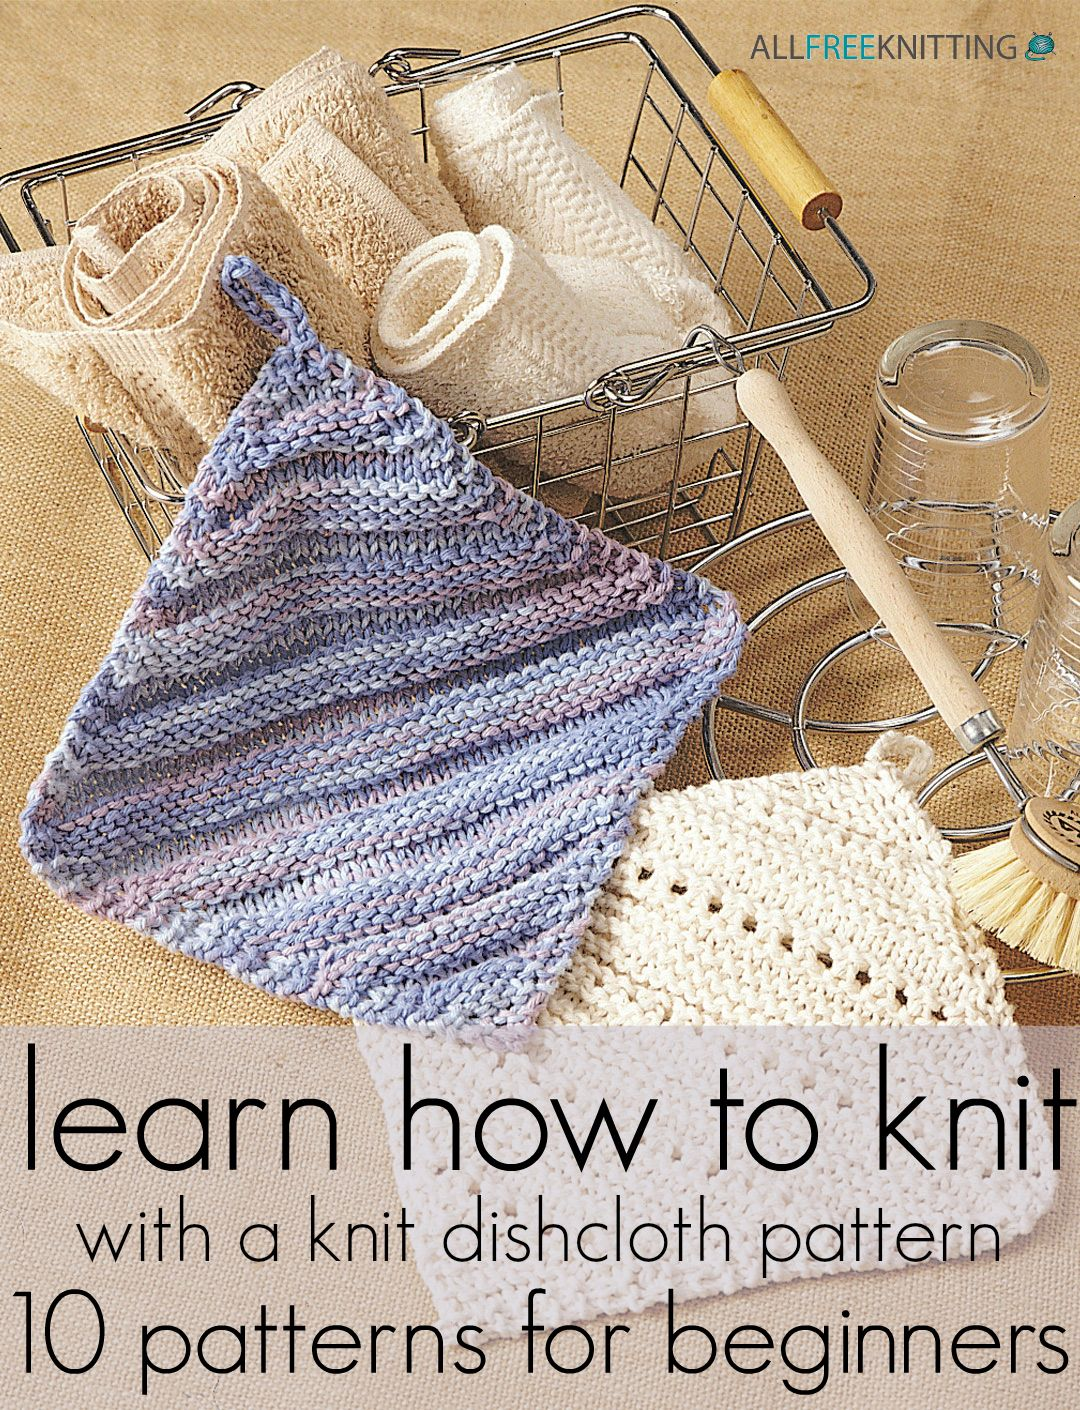 12 Knit Dishcloth Patterns for Beginners | Pinterest | Knitted ...